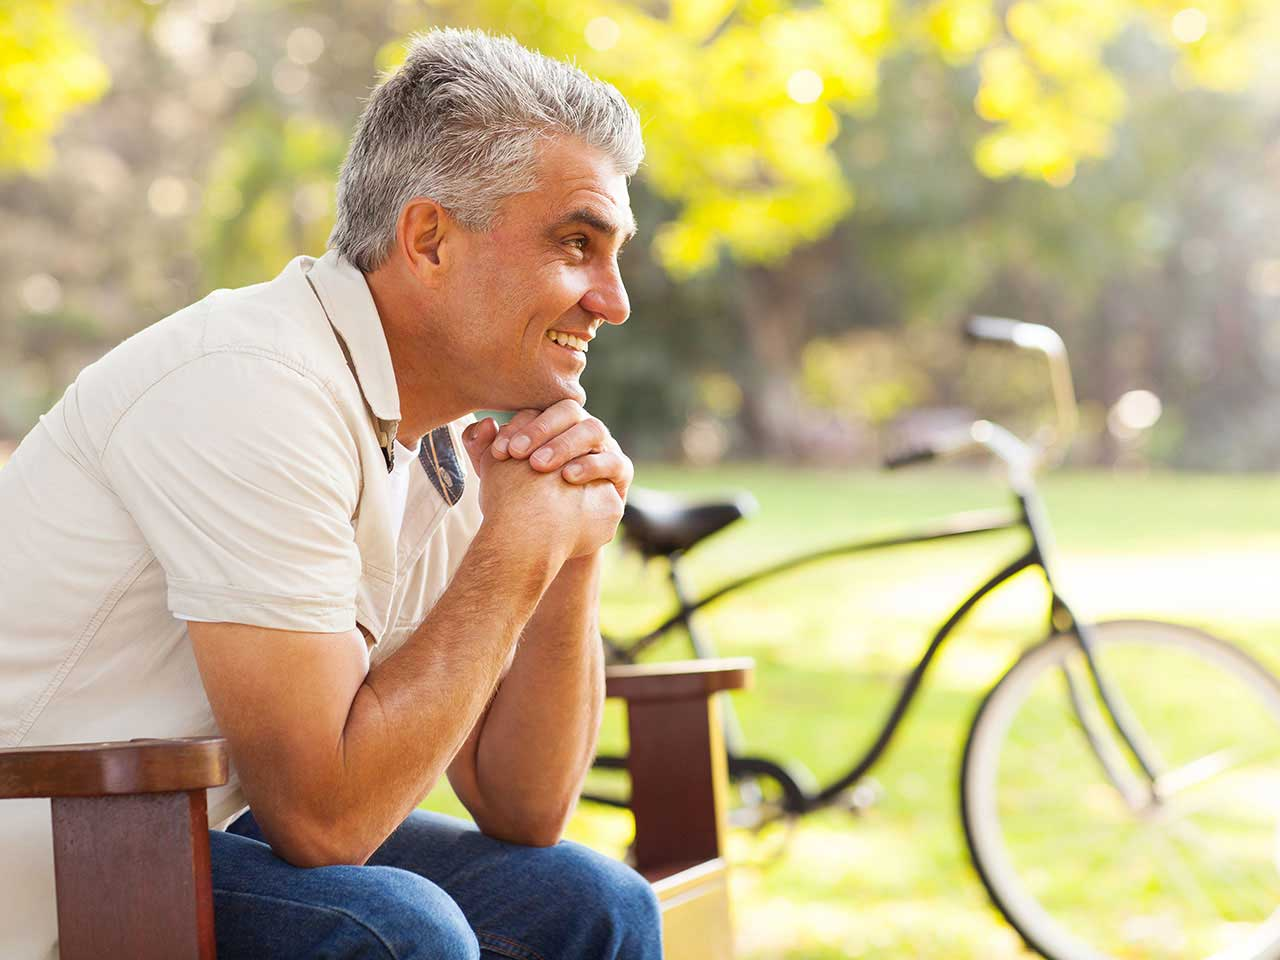 Mature man sitting on a bench smiling